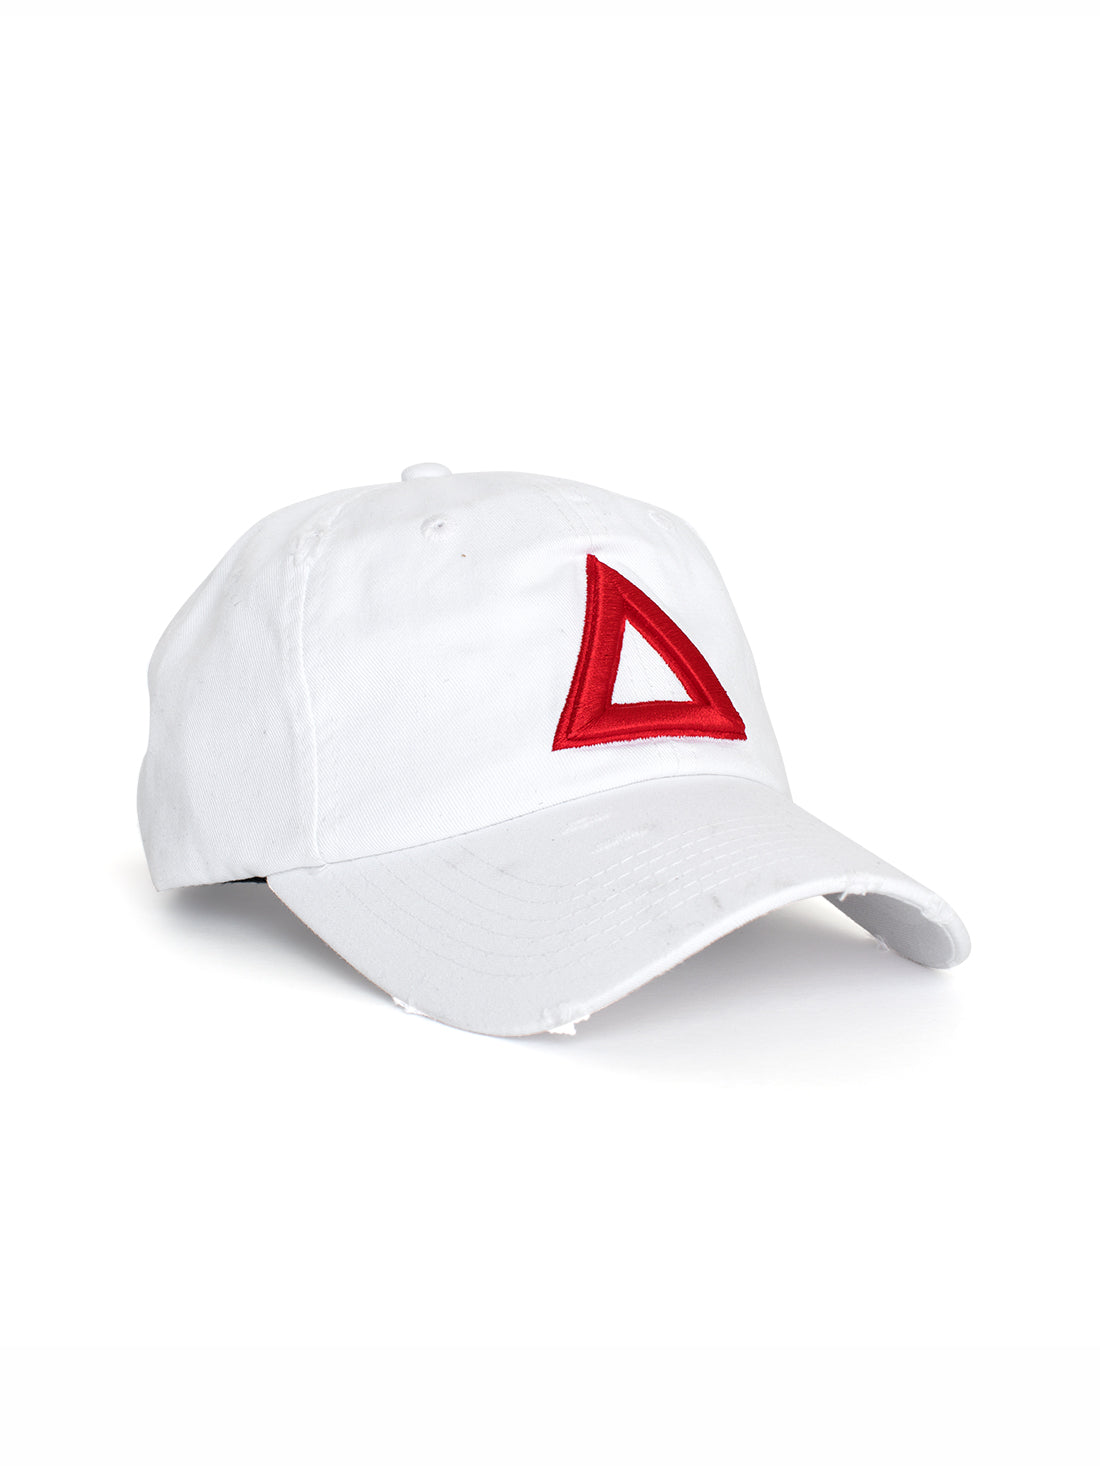 DISTRESS DAD HAT WHITE  - RED TRI - Triangulo Swag